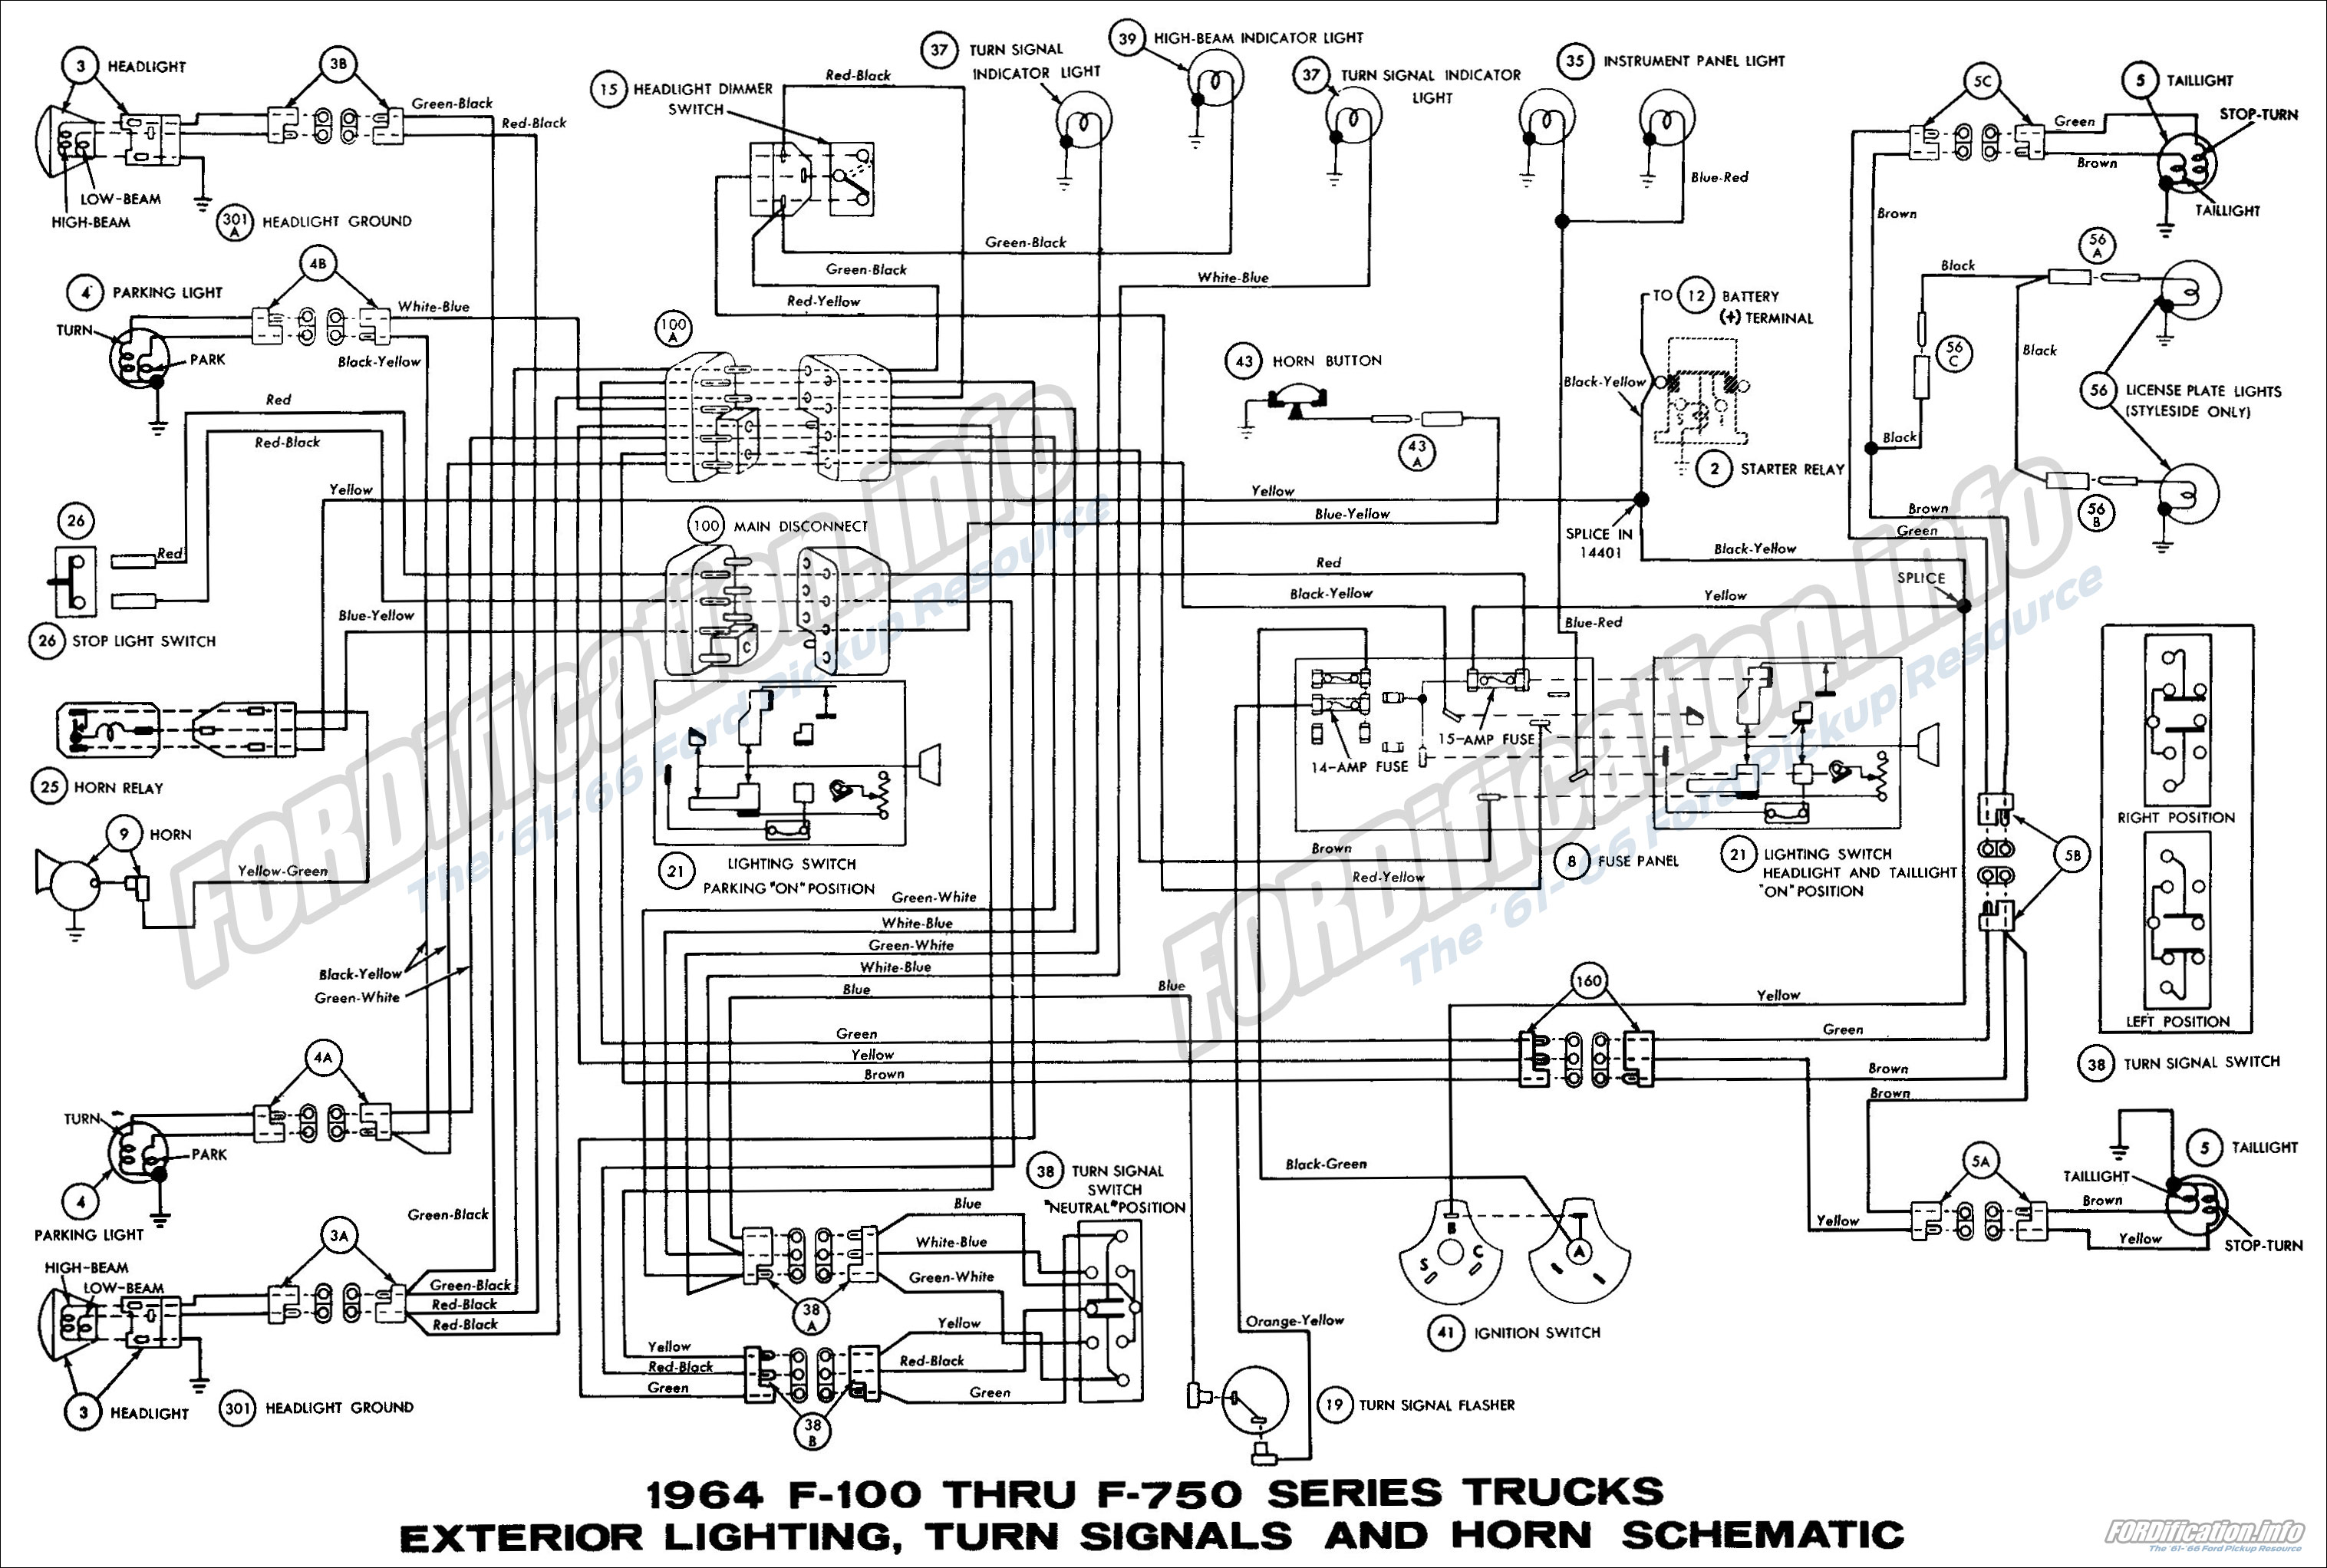 [FPWZ_2684]  65A02 2012 F750 Fuse Box Diagram | Wiring Library | 1996 Ford F750 Wiring Schematic |  | Wiring Library